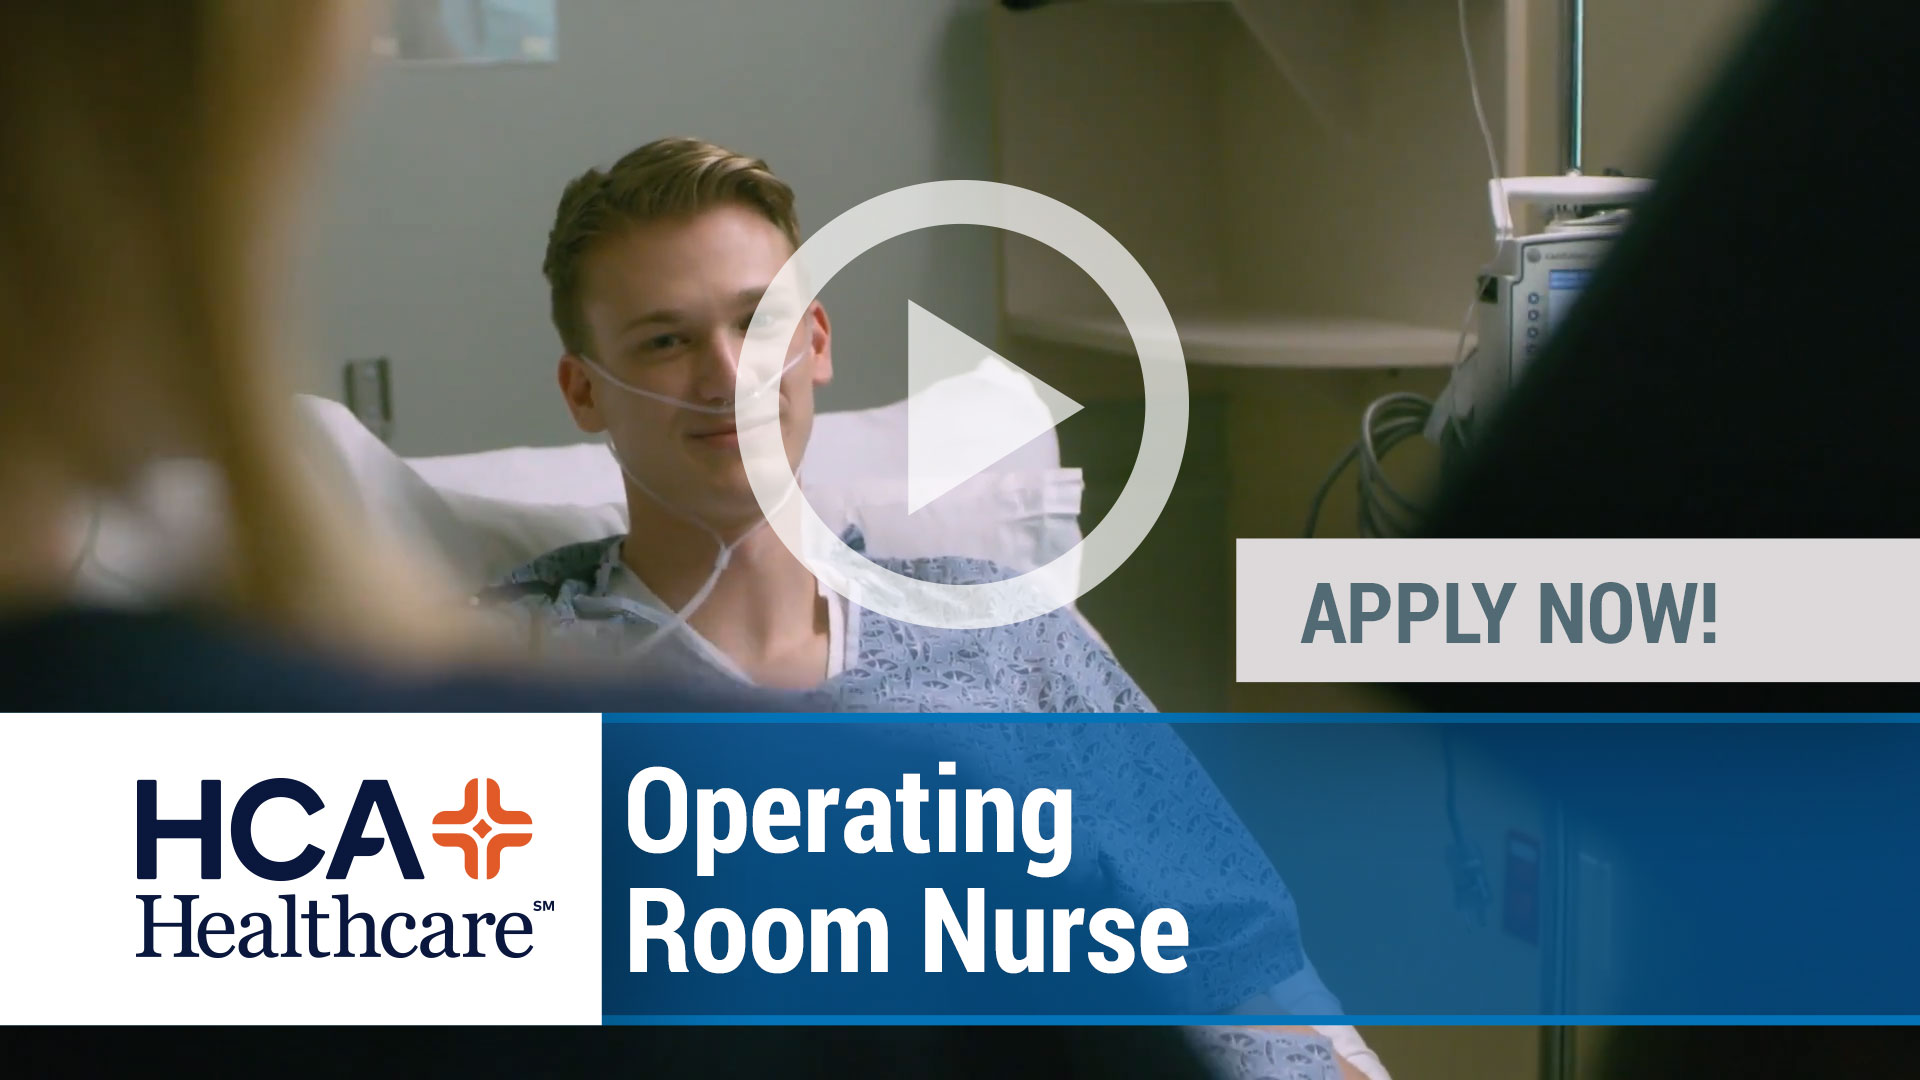 Watch our careers video for available job opening Operating Room Nurse in Myrtle Beach, South Carolina